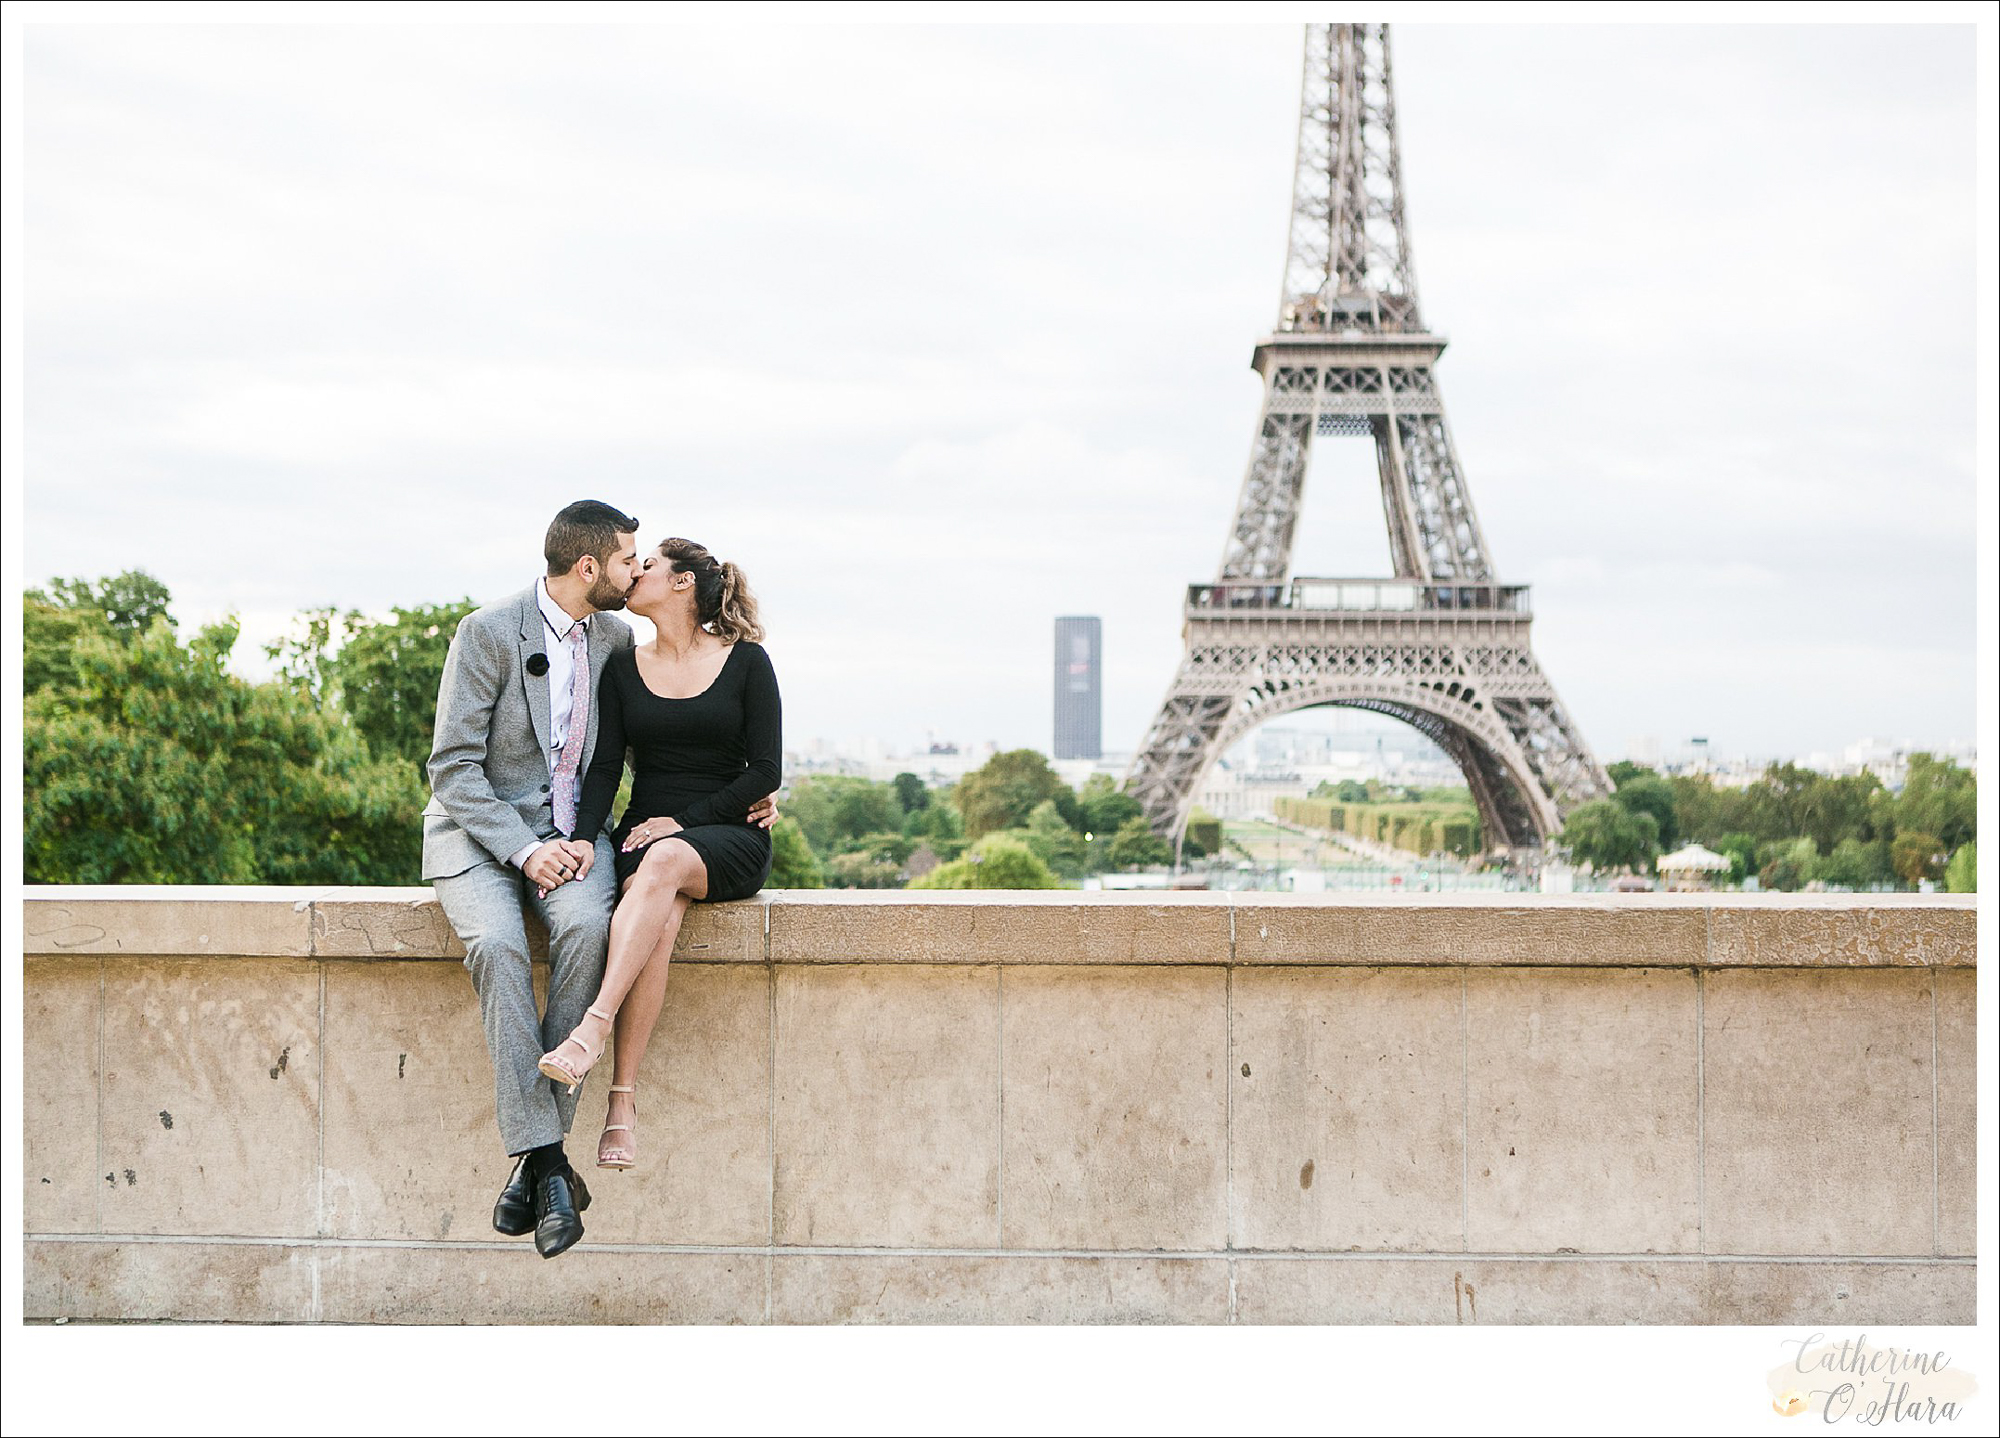 surprise proposal engagement photographer paris france-38.jpg